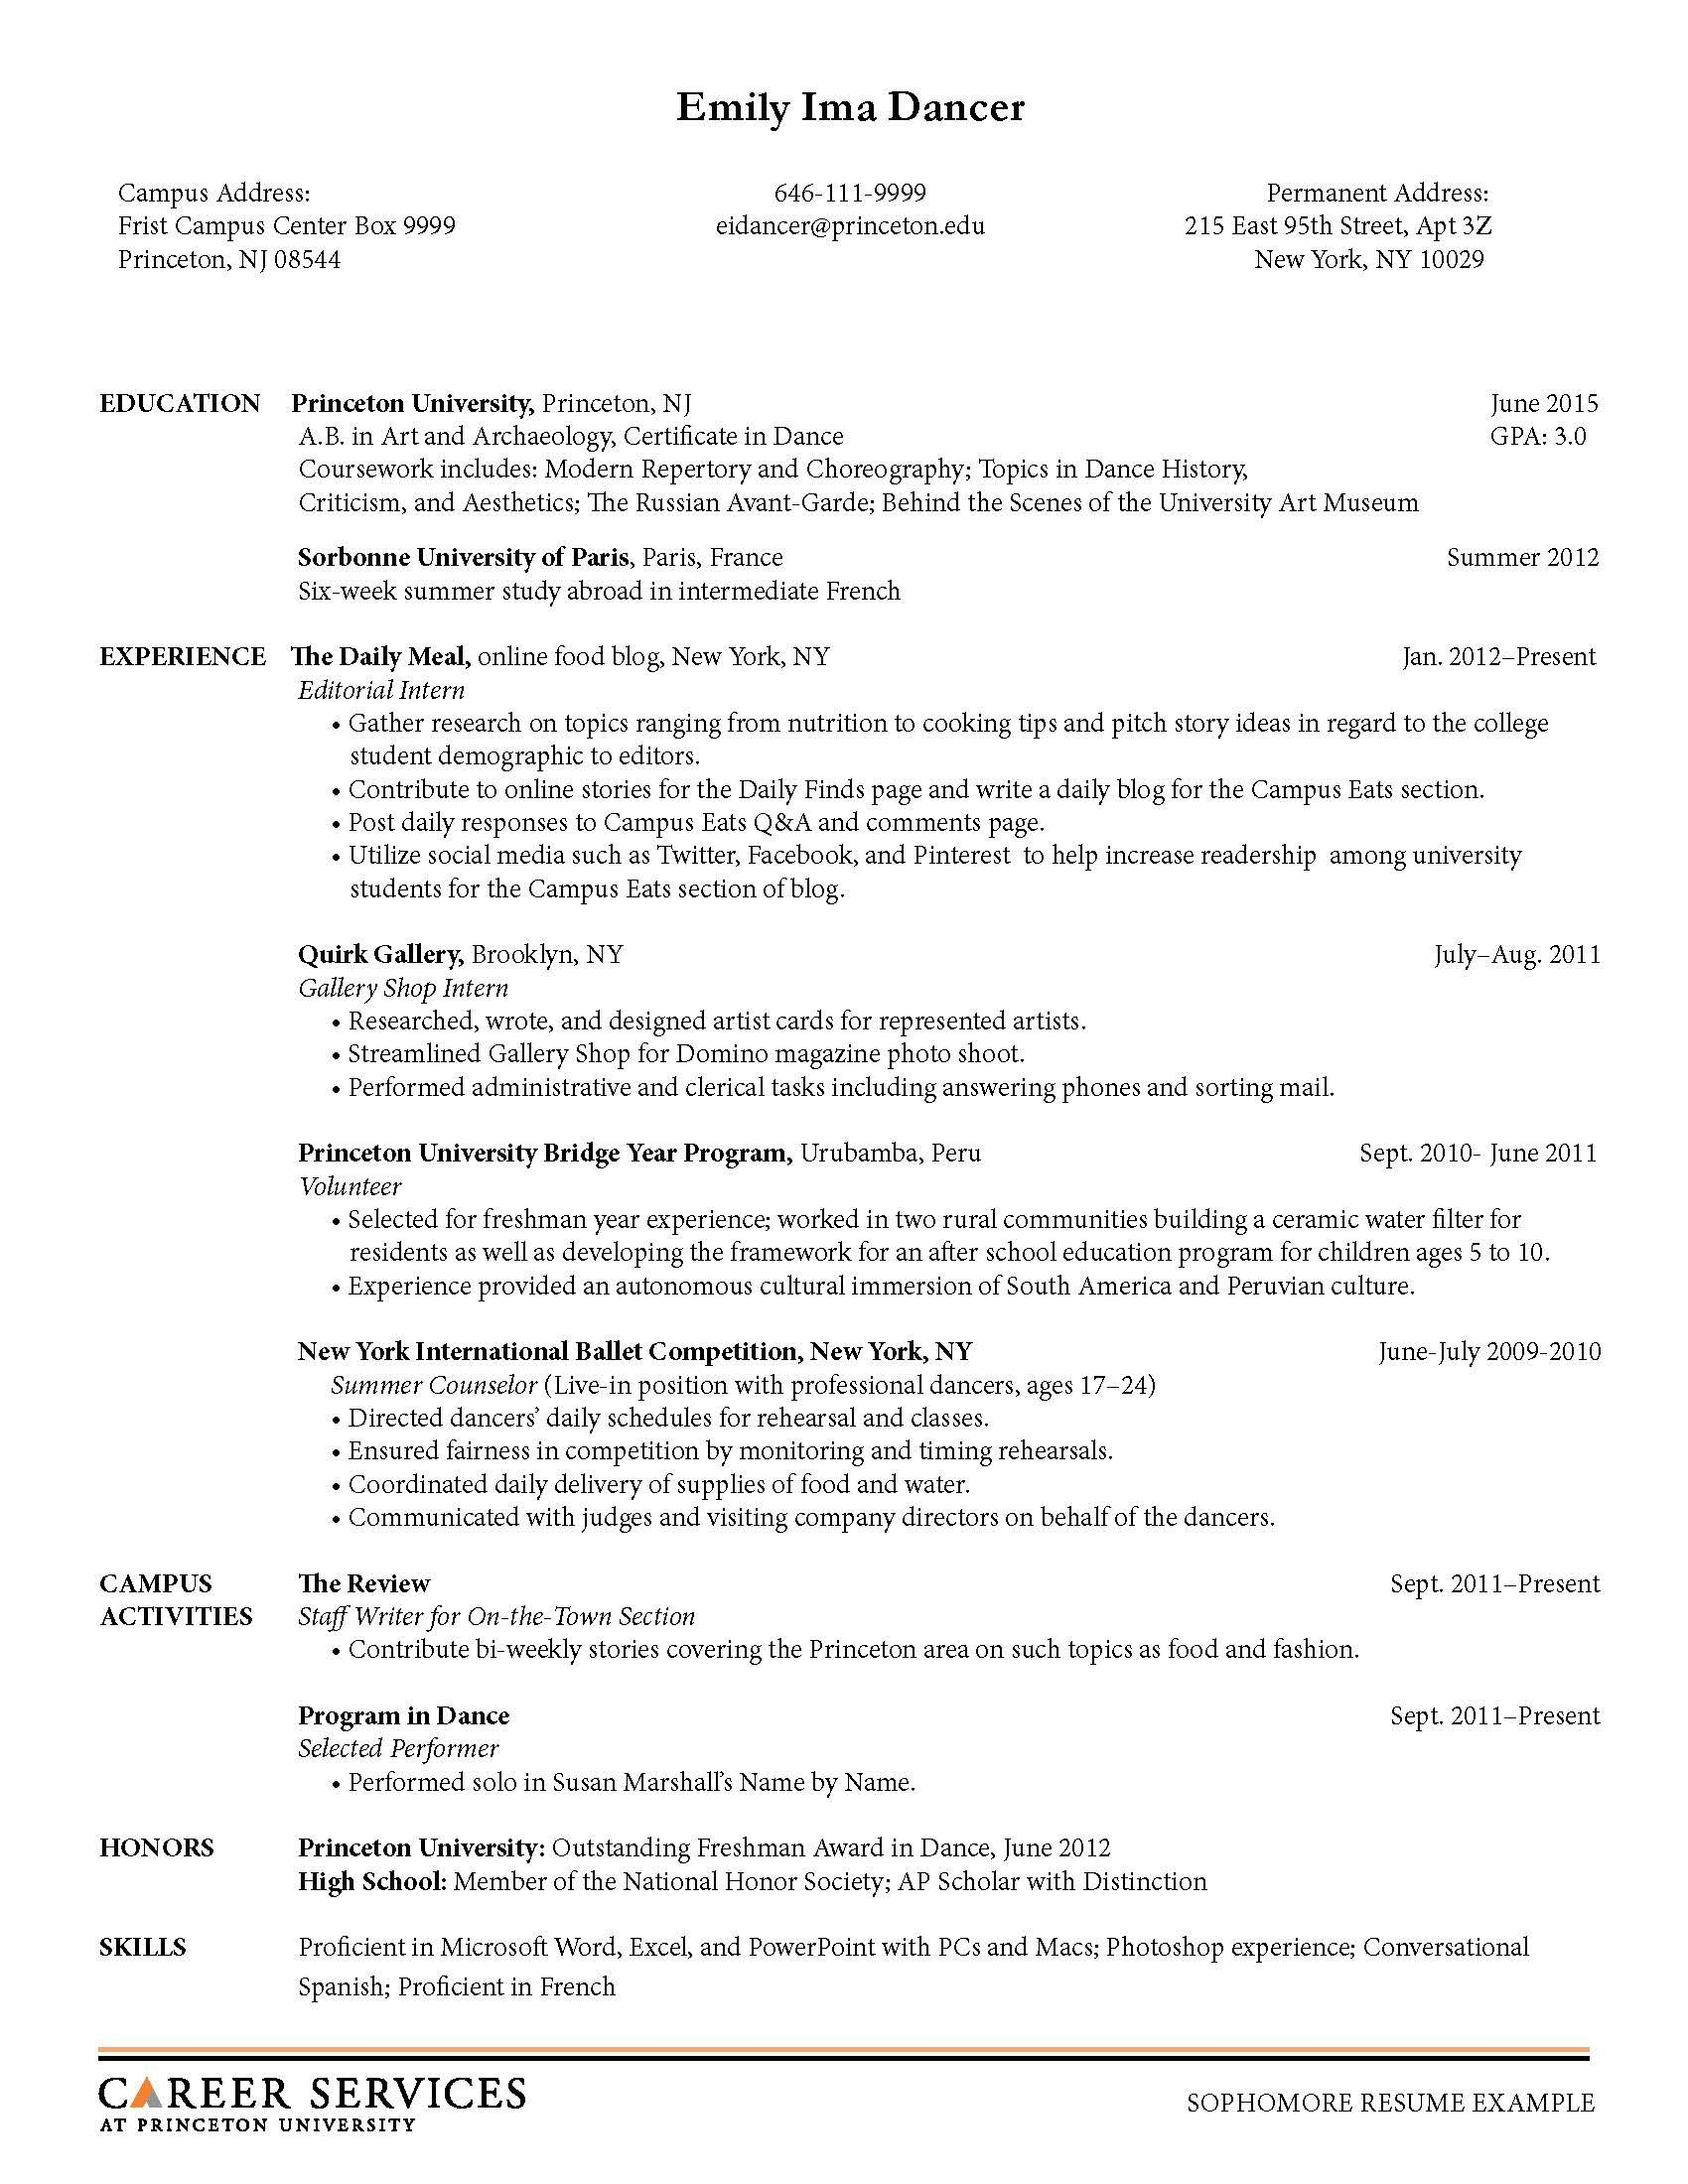 Opposenewapstandardsus  Fascinating Sample Resume Resume And Career On Pinterest With Extraordinary Athletic Trainer Resume Besides Biotech Resume Furthermore Server Resume Example With Comely Award Winning Resumes Also Create Your Resume In Addition How To Name Your Resume And Receptionist Skills Resume As Well As Examples Of Student Resumes Additionally Basic Objective For Resume From Pinterestcom With Opposenewapstandardsus  Extraordinary Sample Resume Resume And Career On Pinterest With Comely Athletic Trainer Resume Besides Biotech Resume Furthermore Server Resume Example And Fascinating Award Winning Resumes Also Create Your Resume In Addition How To Name Your Resume From Pinterestcom